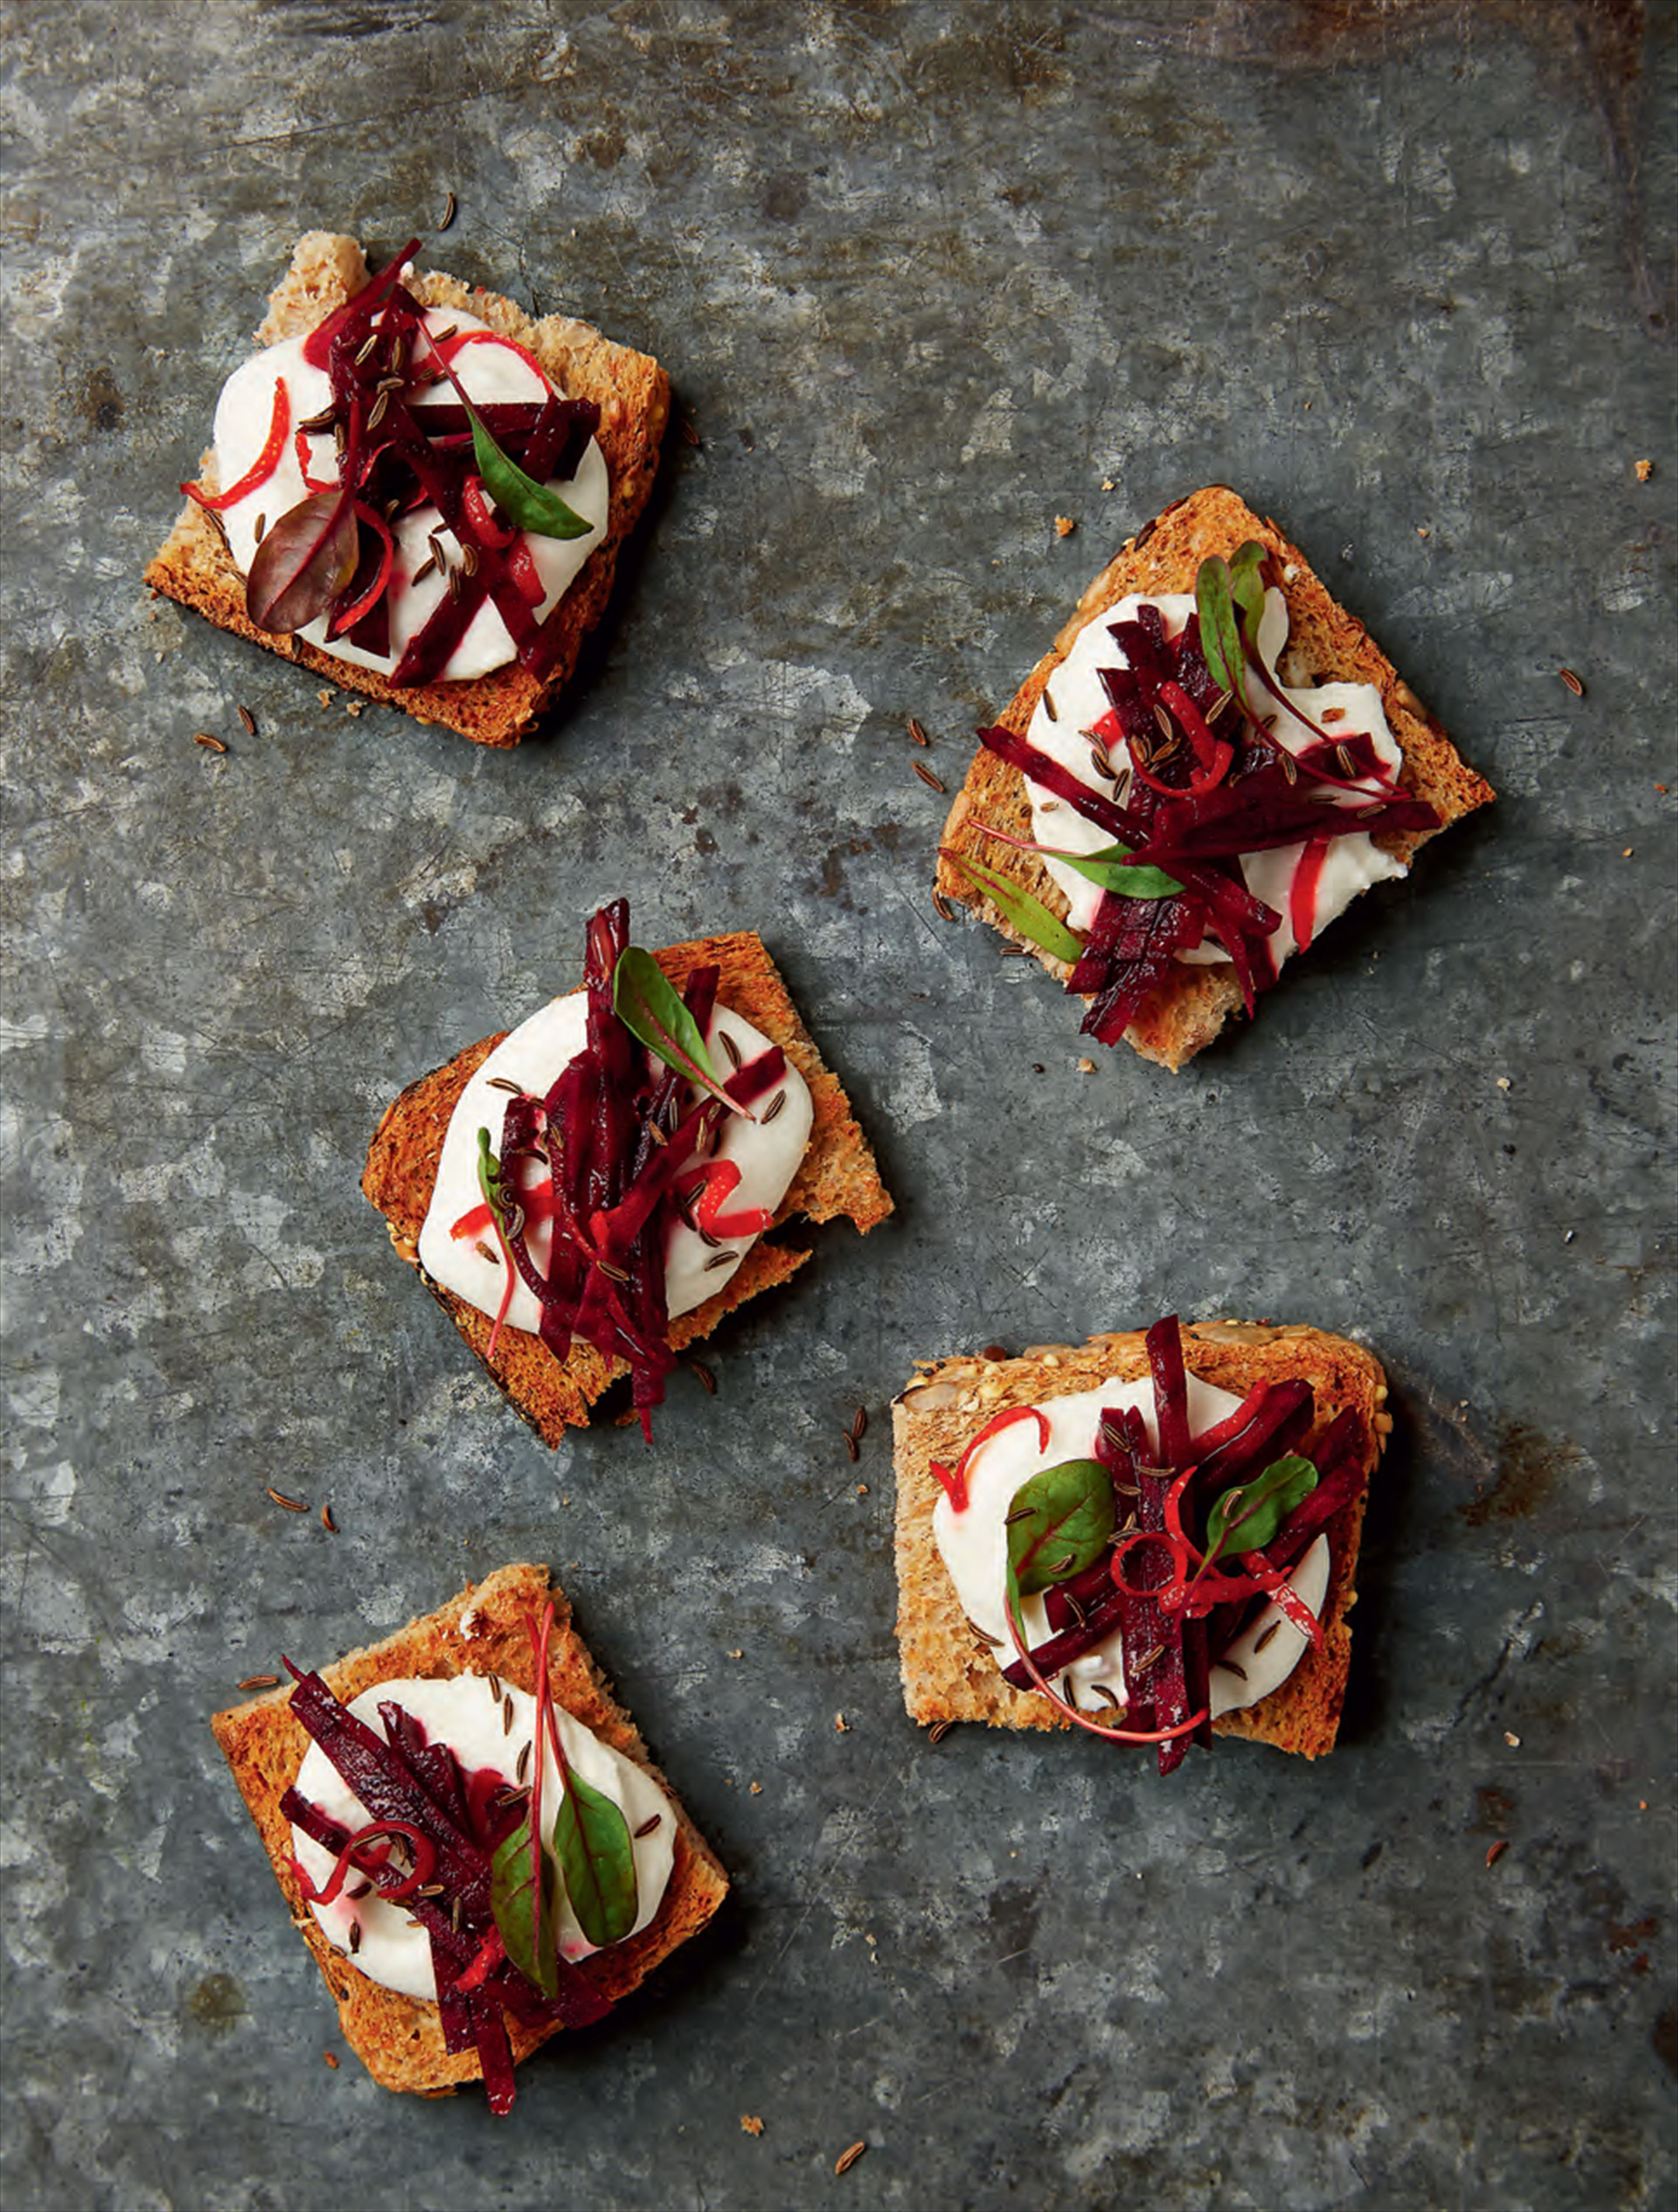 Whipped feta with beetroot & caraway